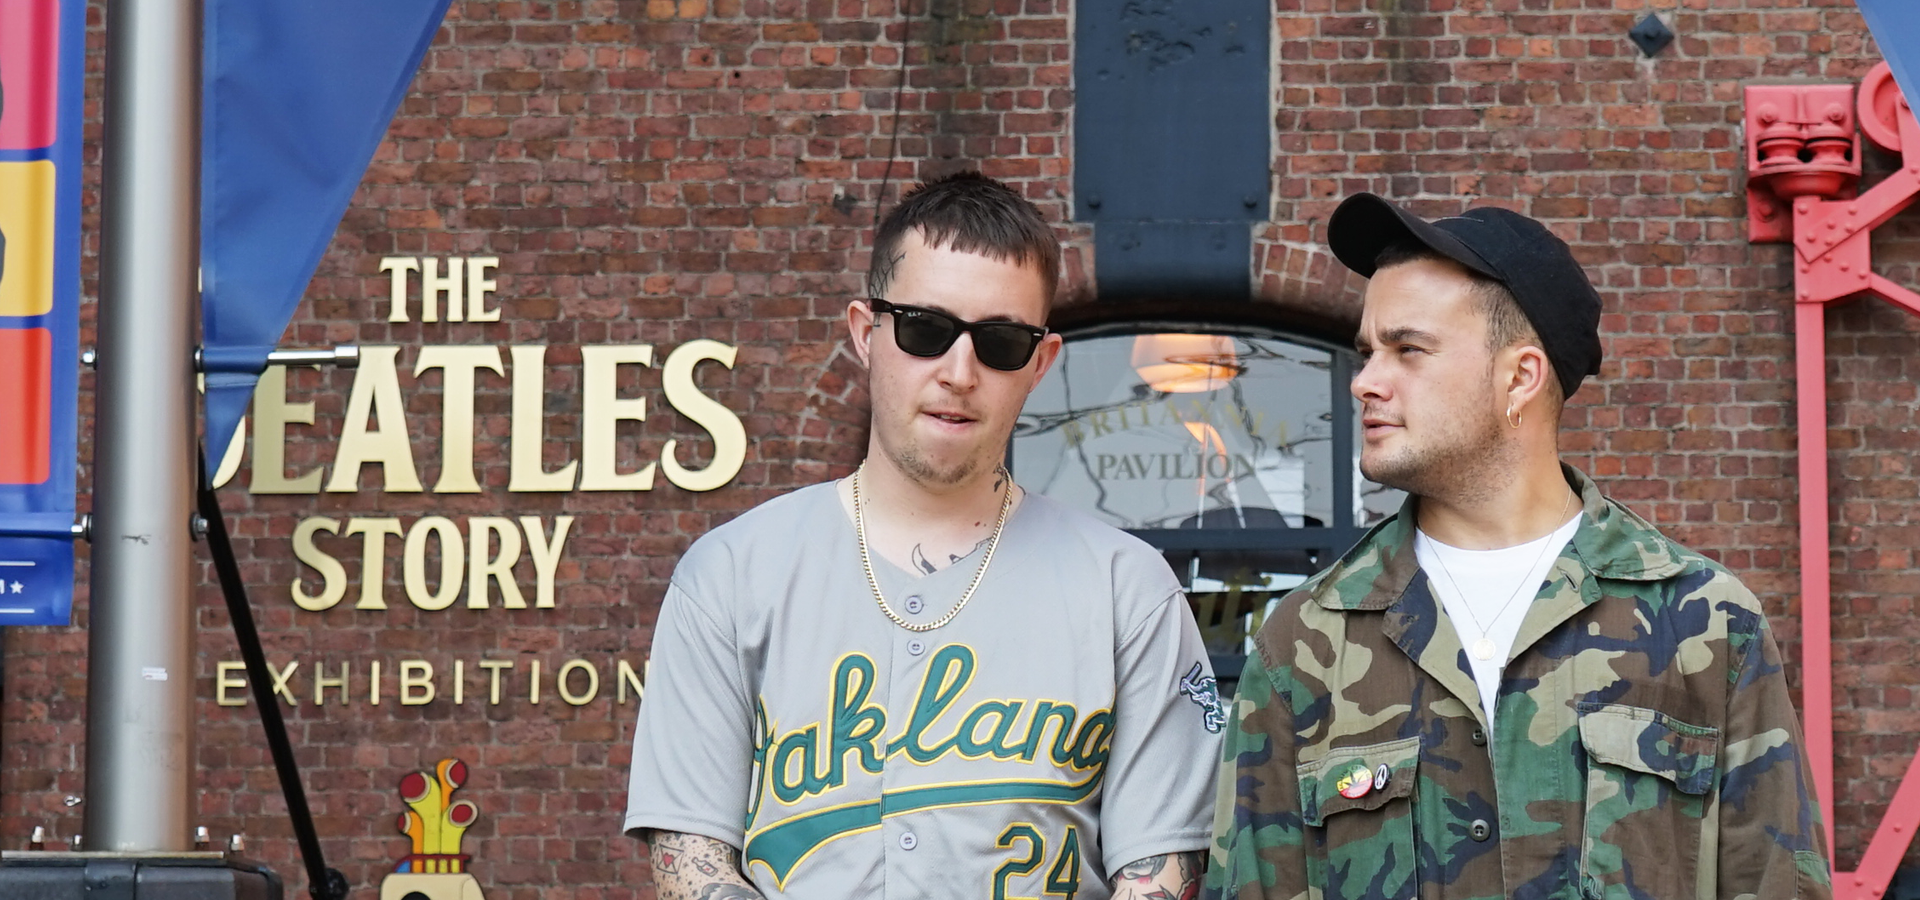 Slaves: Punk duo visit The Beatles Story